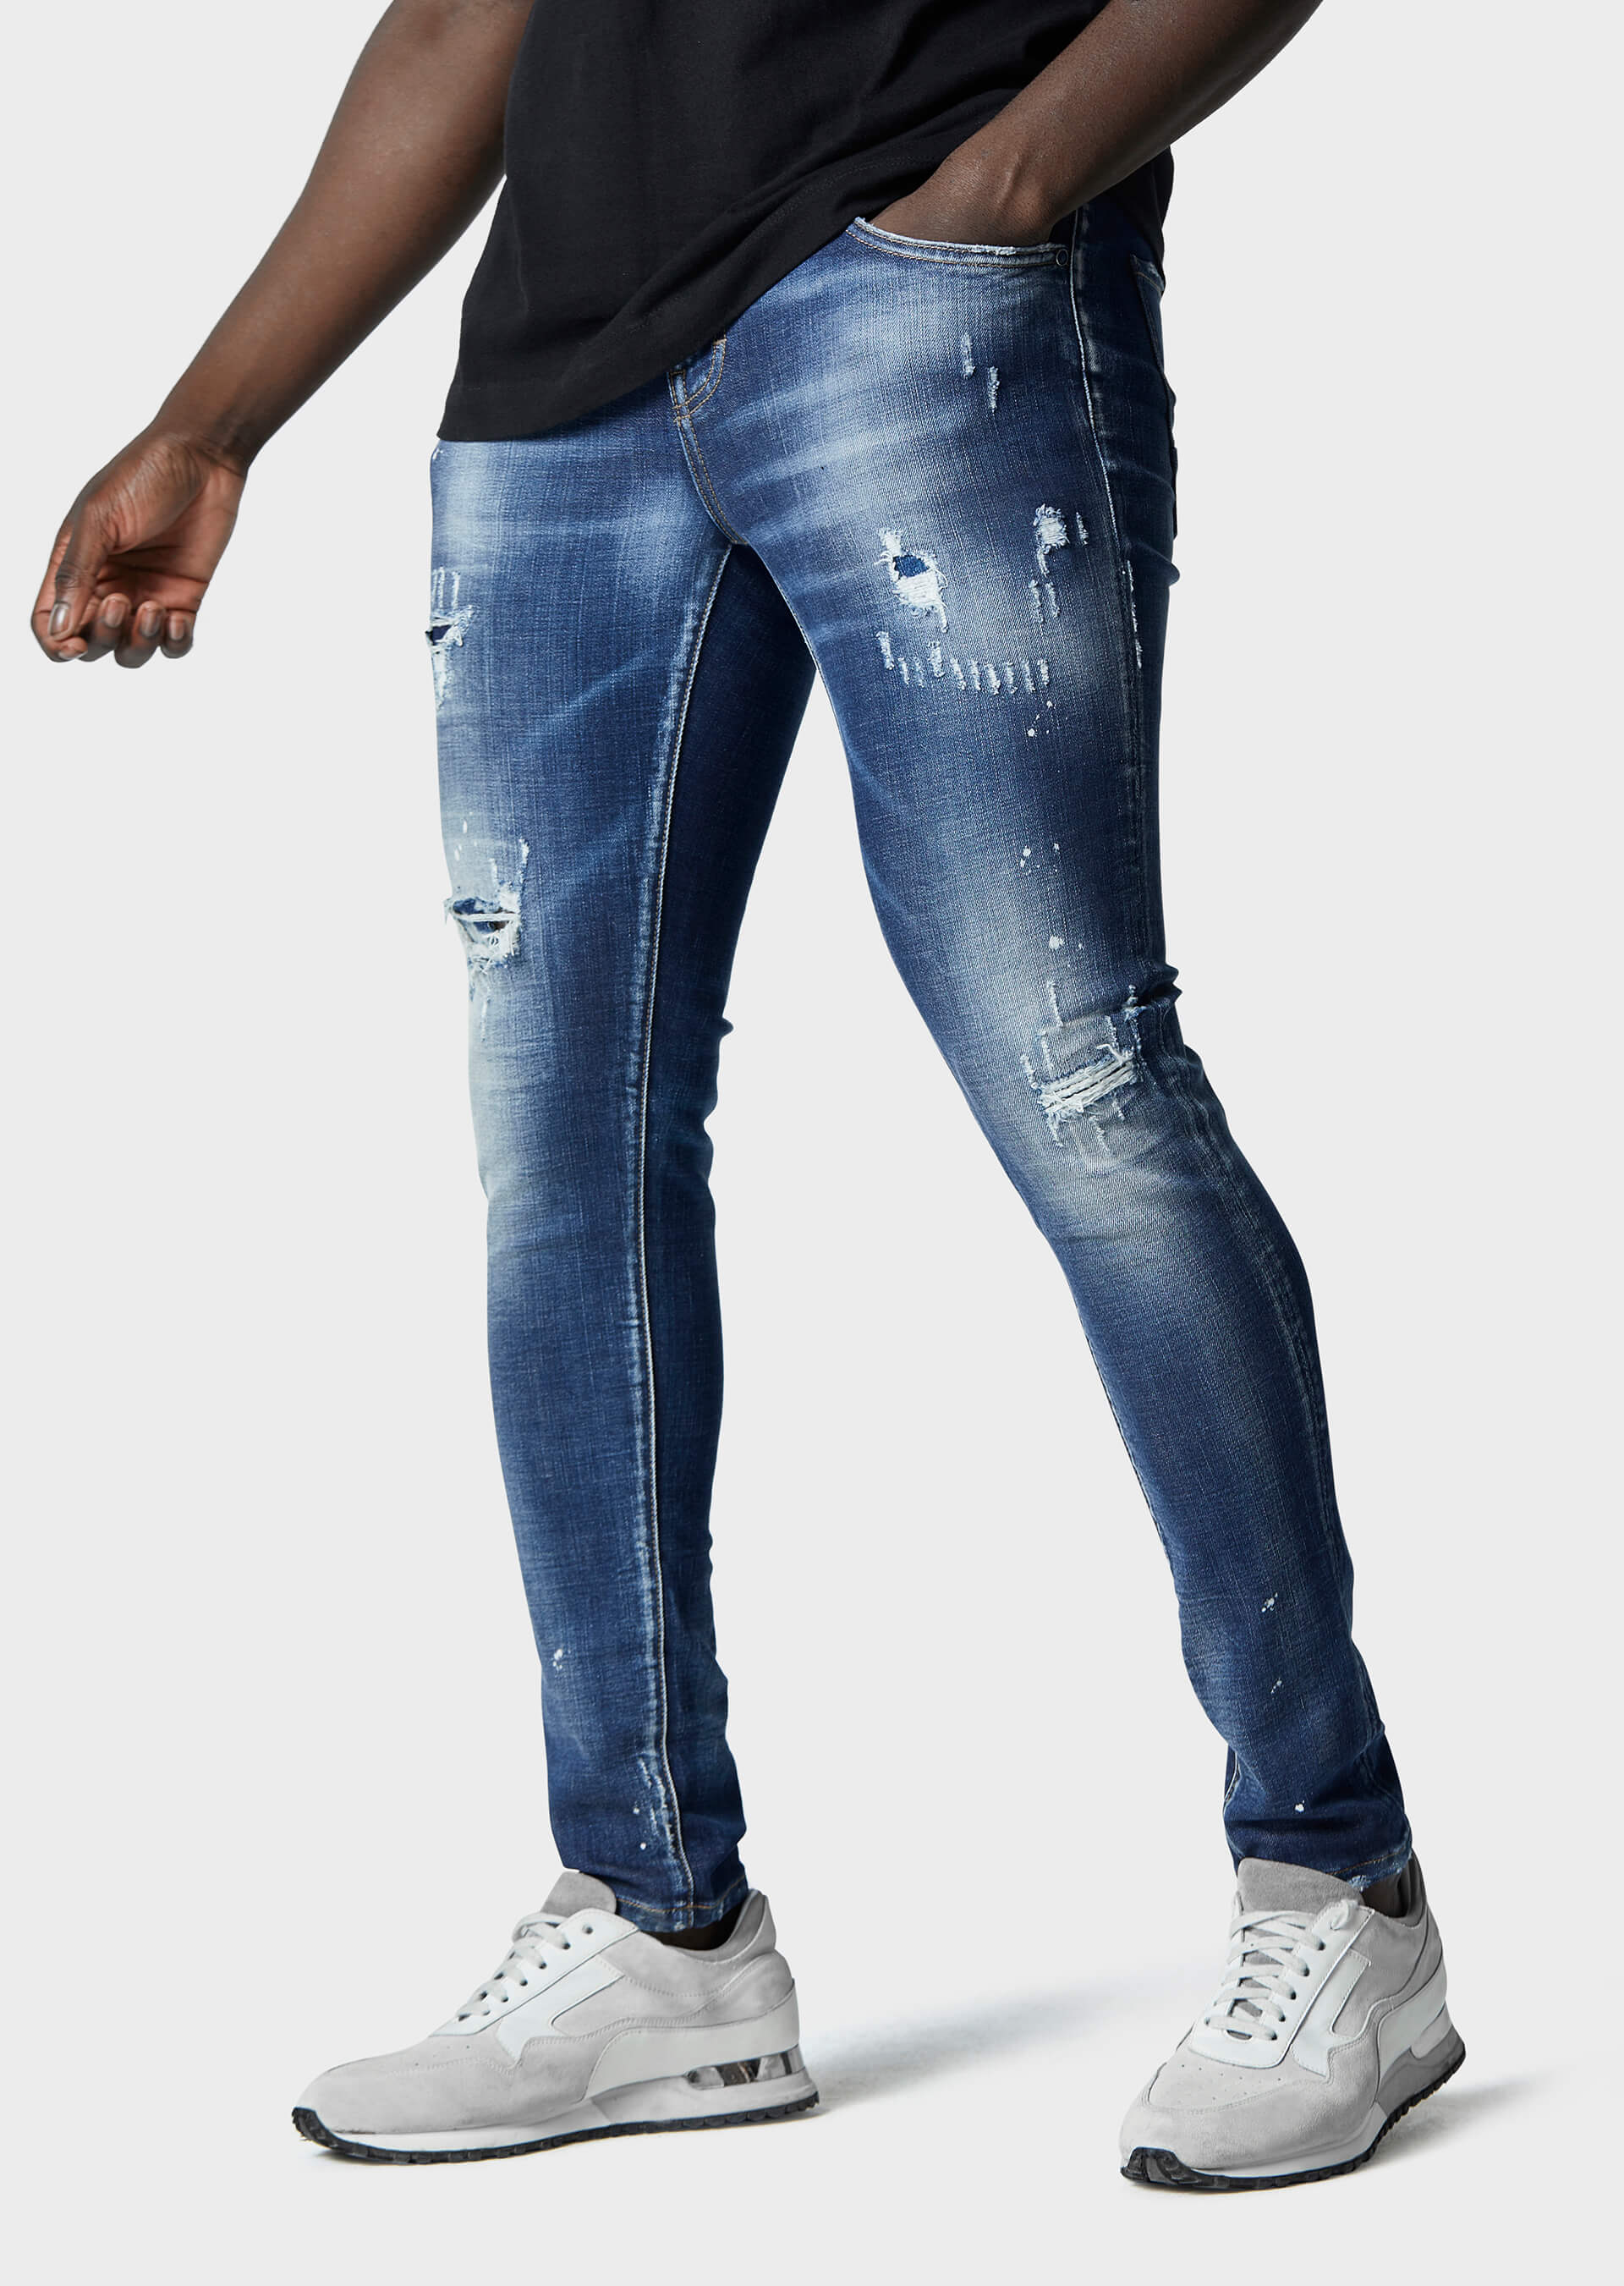 Moriarty COB 718 Slim Fit Jeans second_image